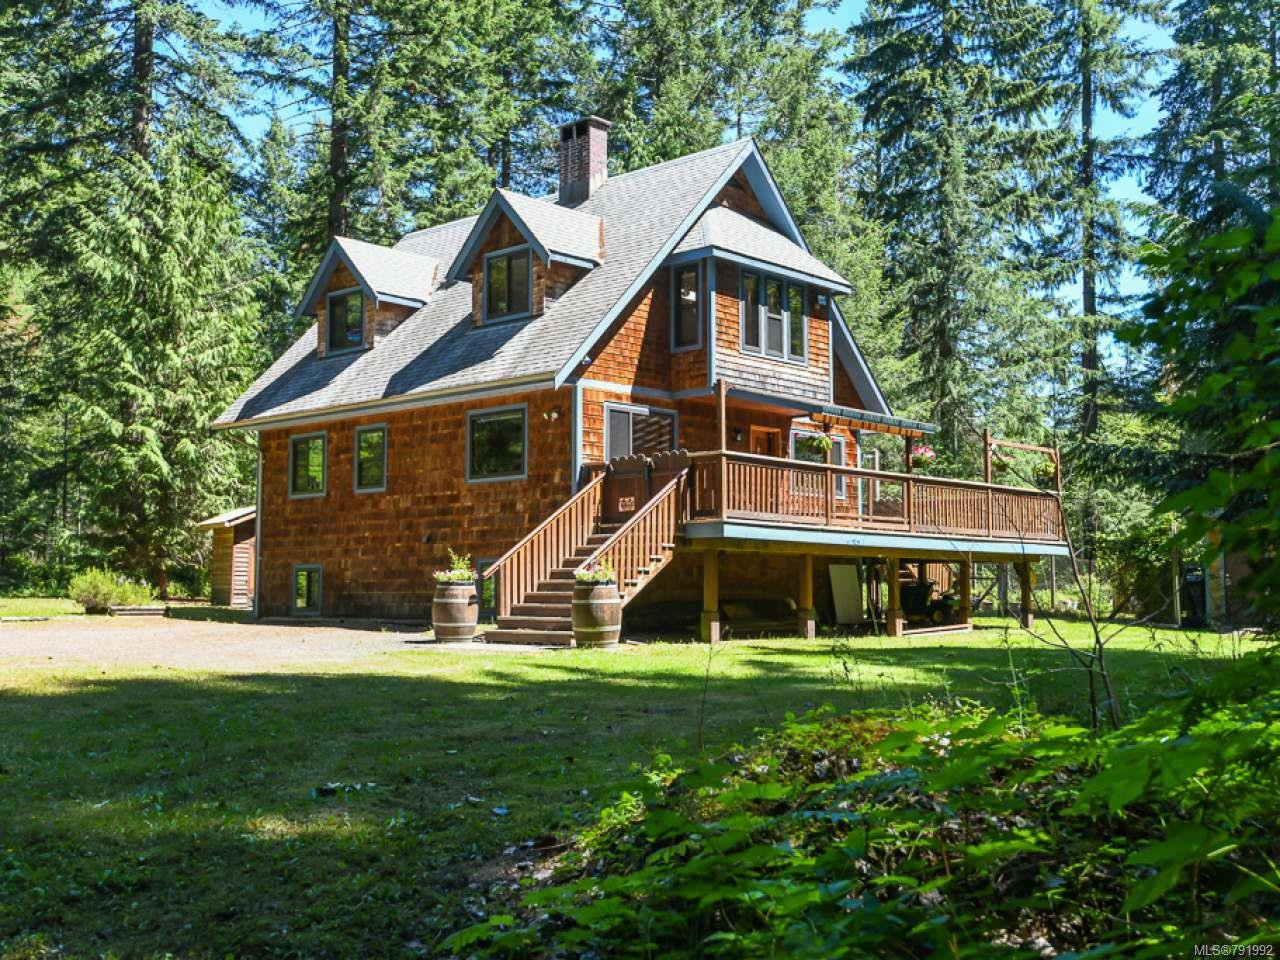 Main Photo: 3875 Dohm Rd in BLACK CREEK: CV Merville Black Creek House for sale (Comox Valley)  : MLS®# 791992